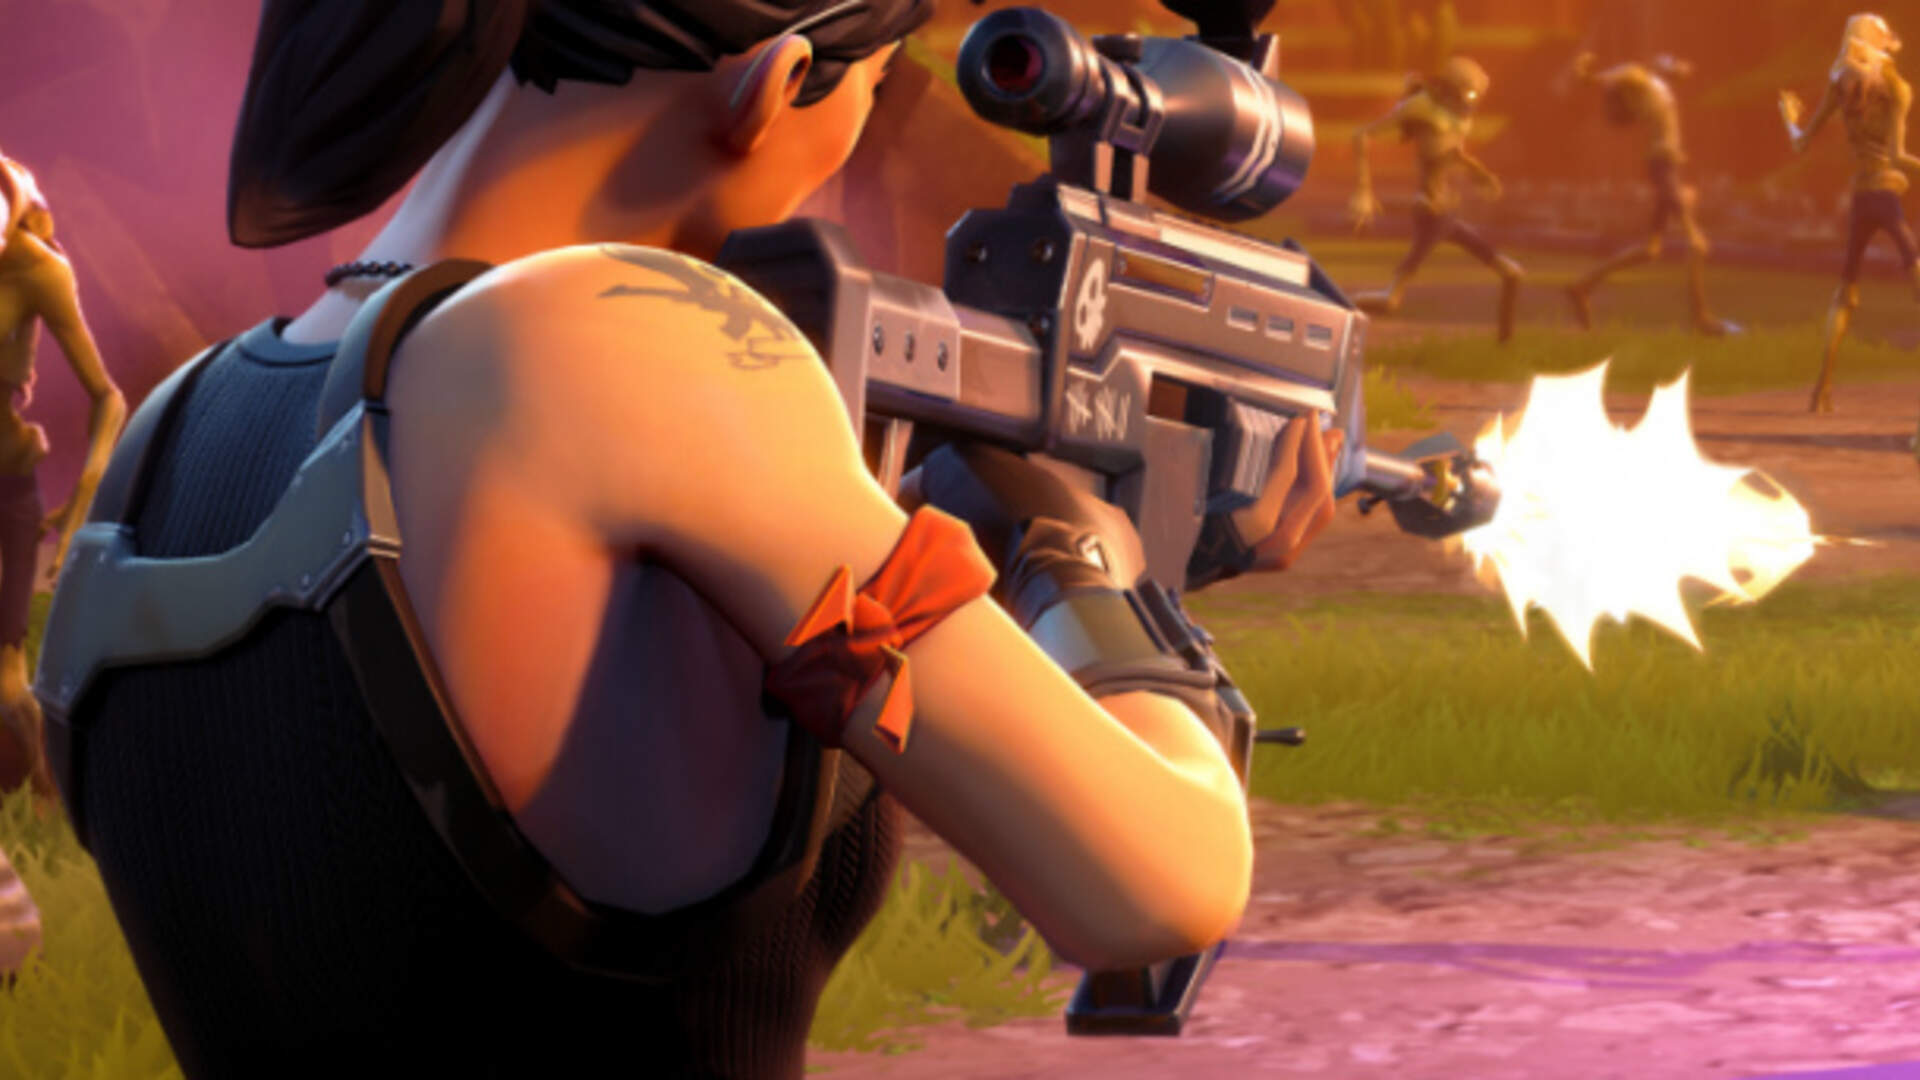 Fortnite Early Access Review: Fighting Through Systems Towards Daylight